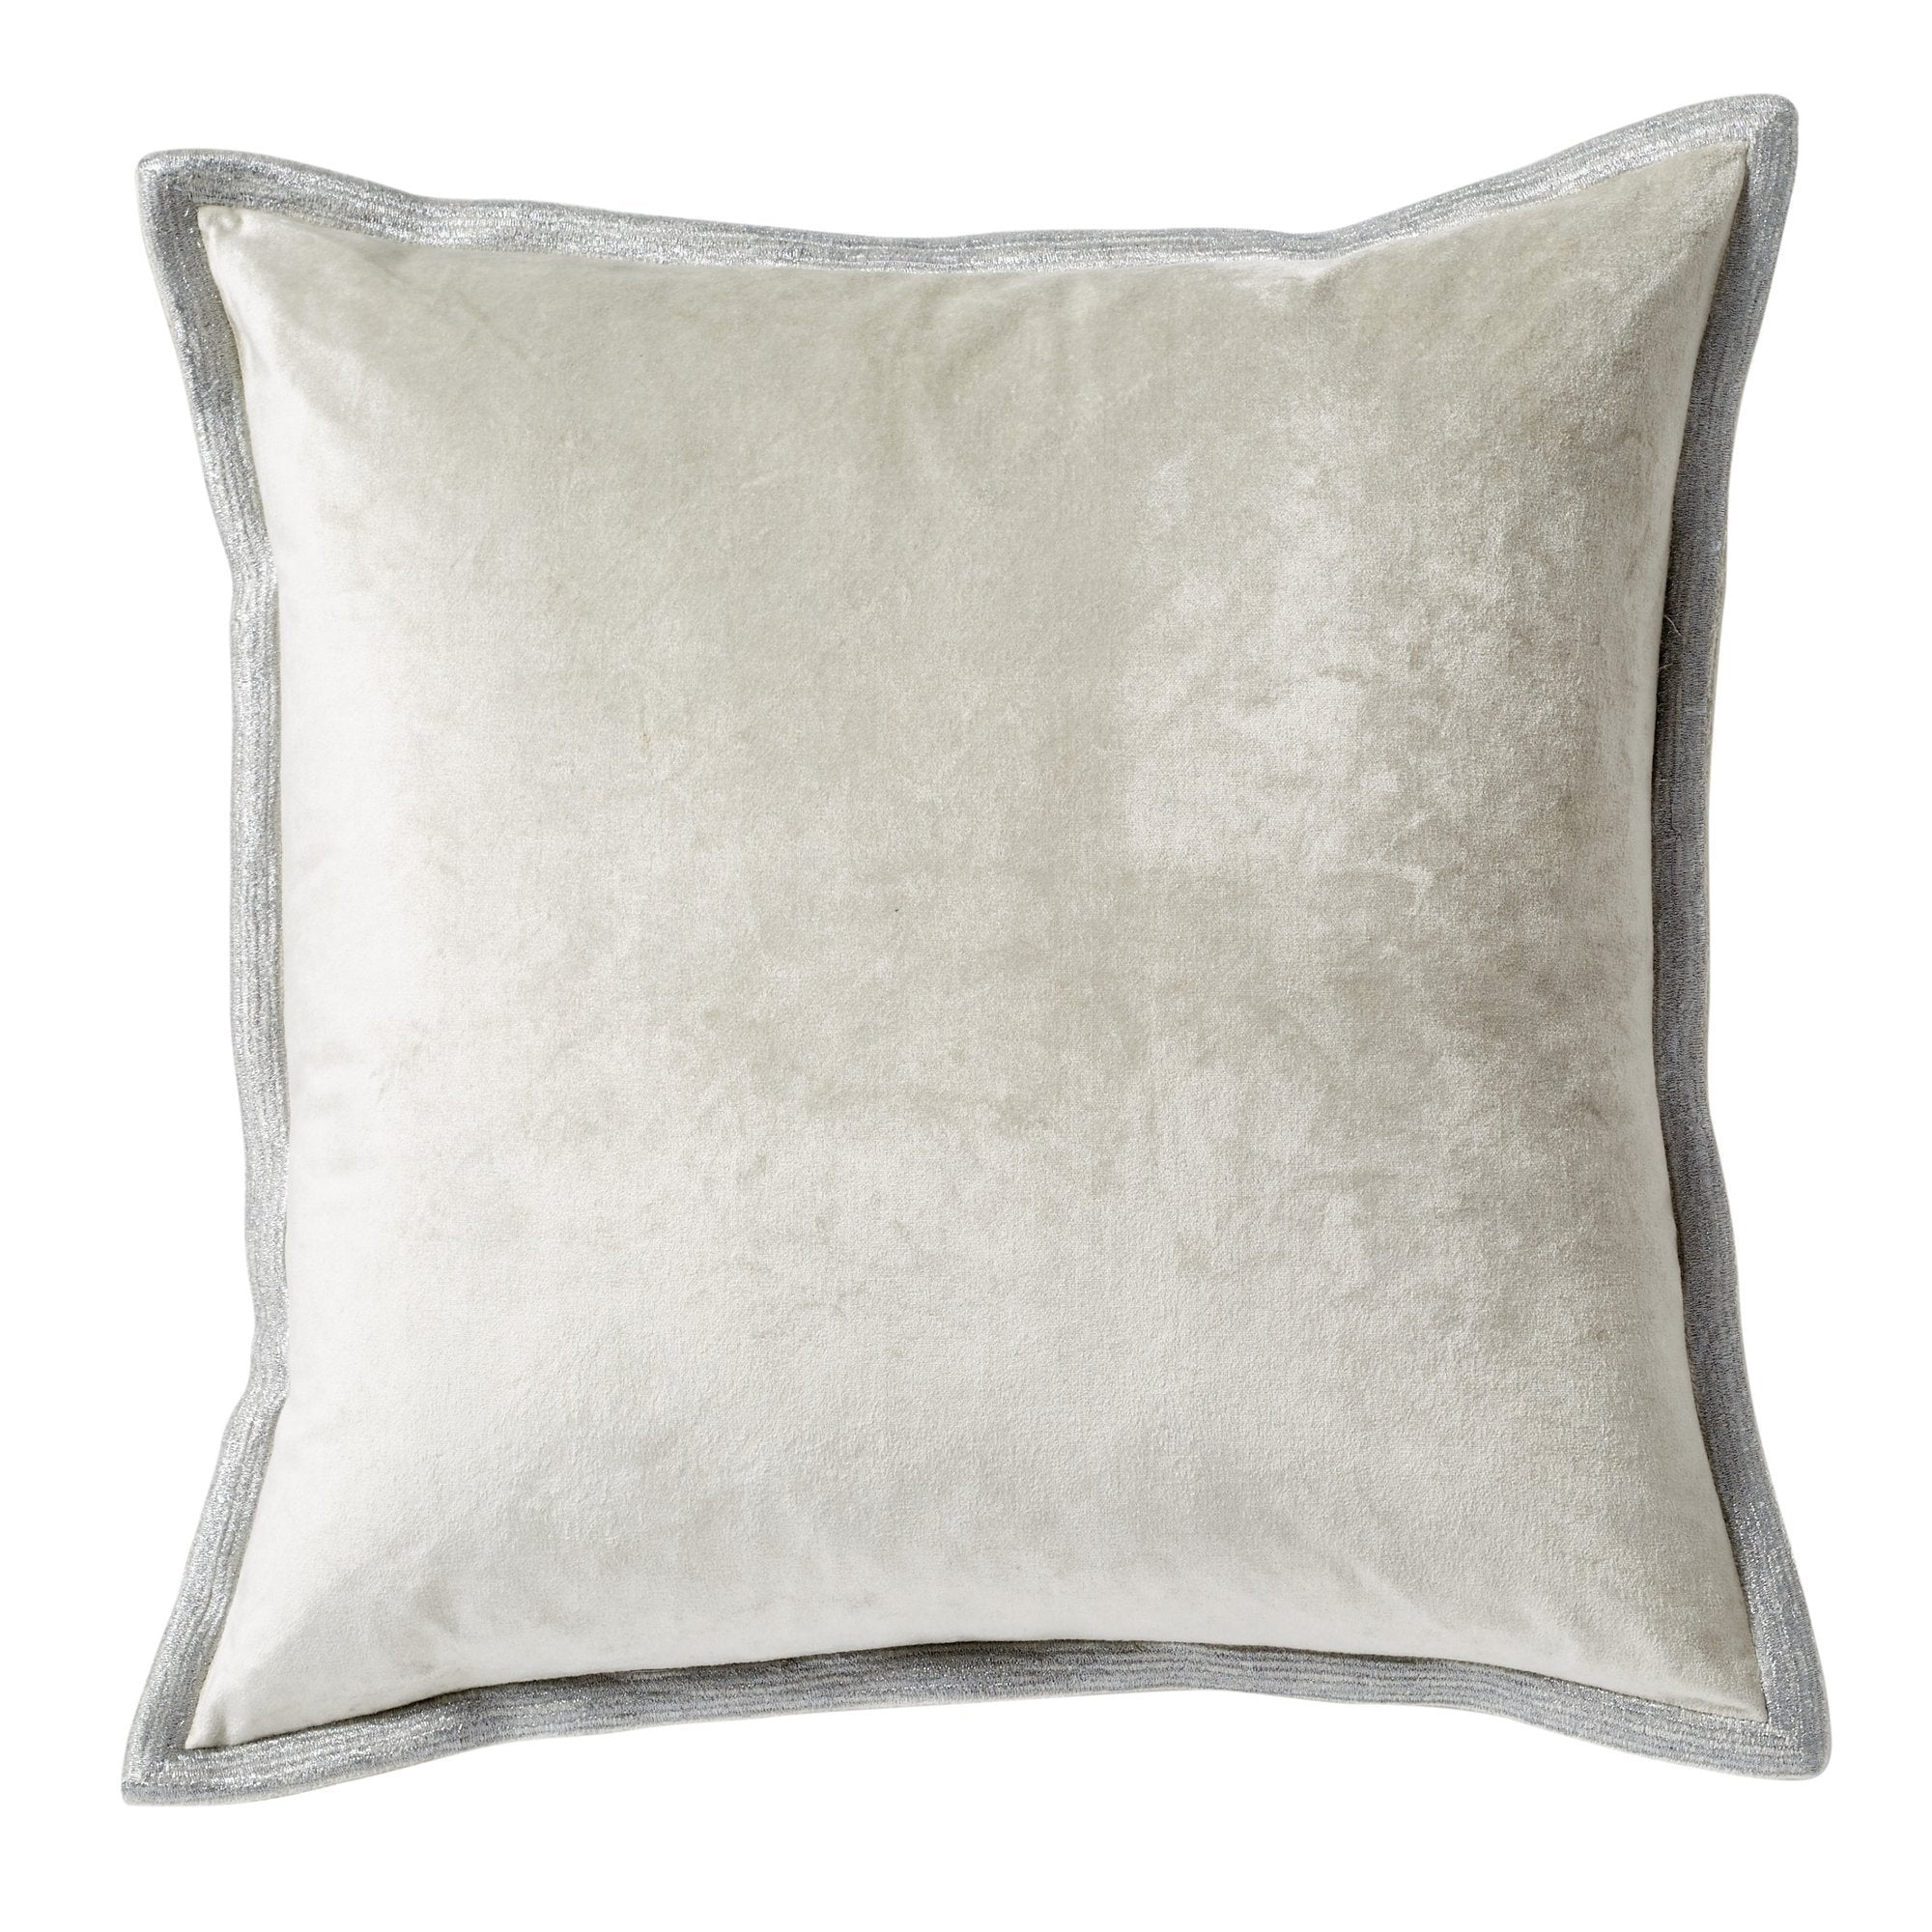 Velvet Metallic Stitch Decorative Pillow - Seafoam